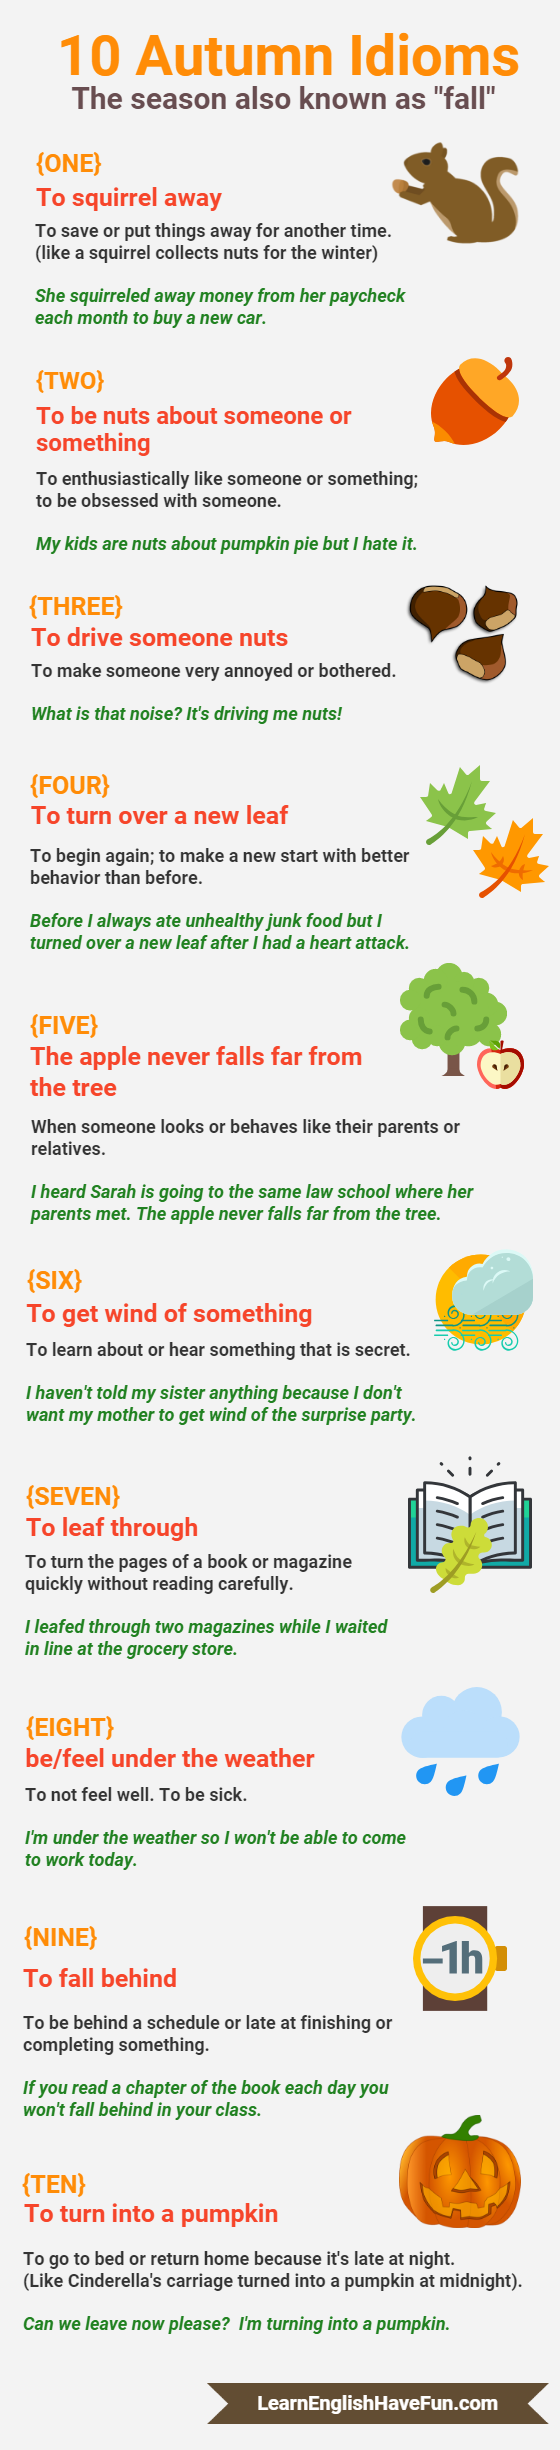 fall idioms infographic: squirrel away,be nuts about,drive someone nuts,turn over new leaf,apple never falls far from tree,get wind of, leaf through,under the weather, fall behind, turn into pumpkin